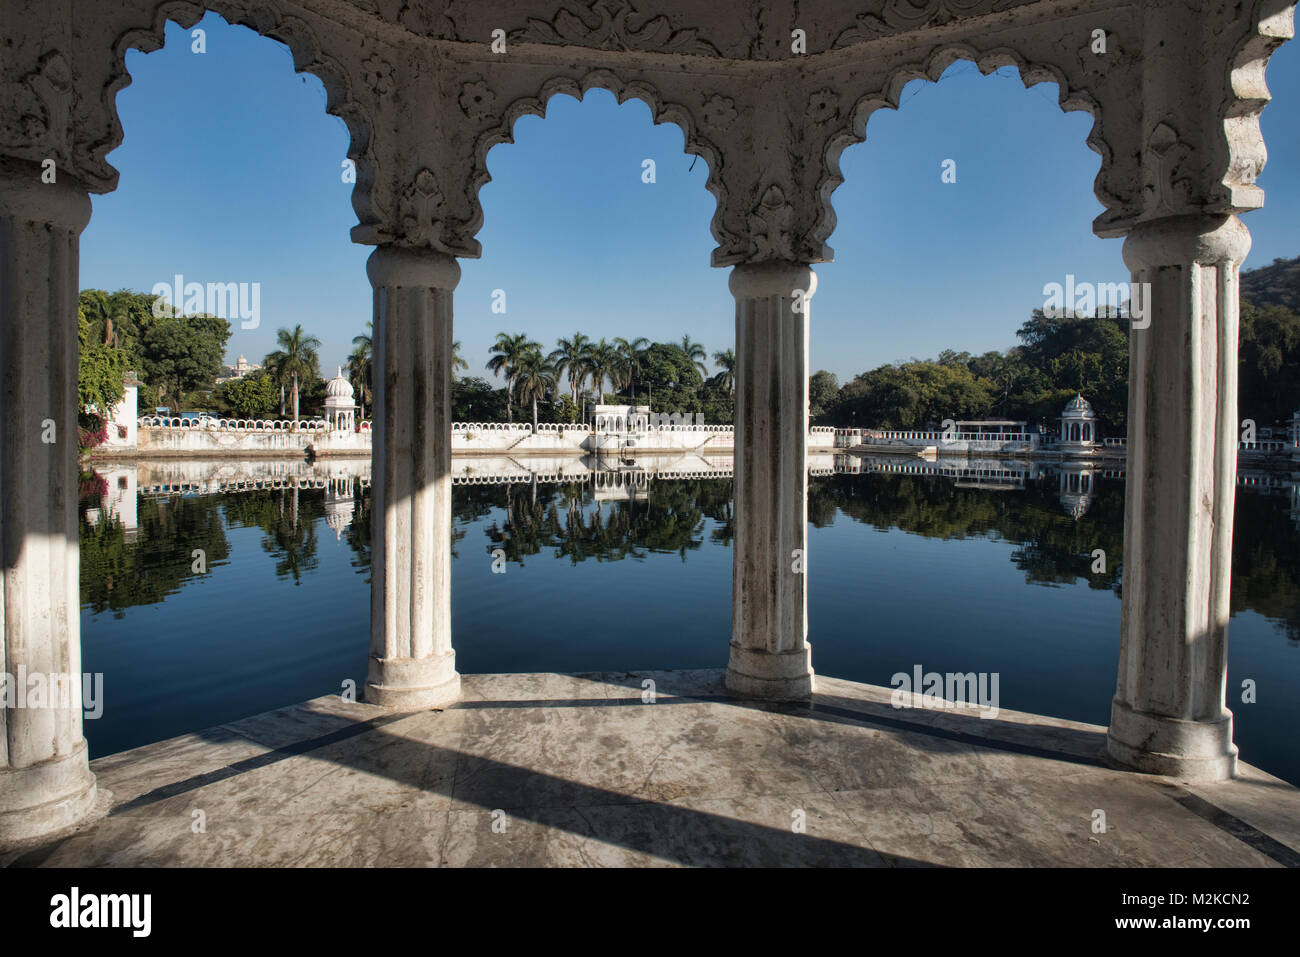 Moghul architecture on the Dudh Talai Lake, Udaipur, Rajasthan, India - Stock Image